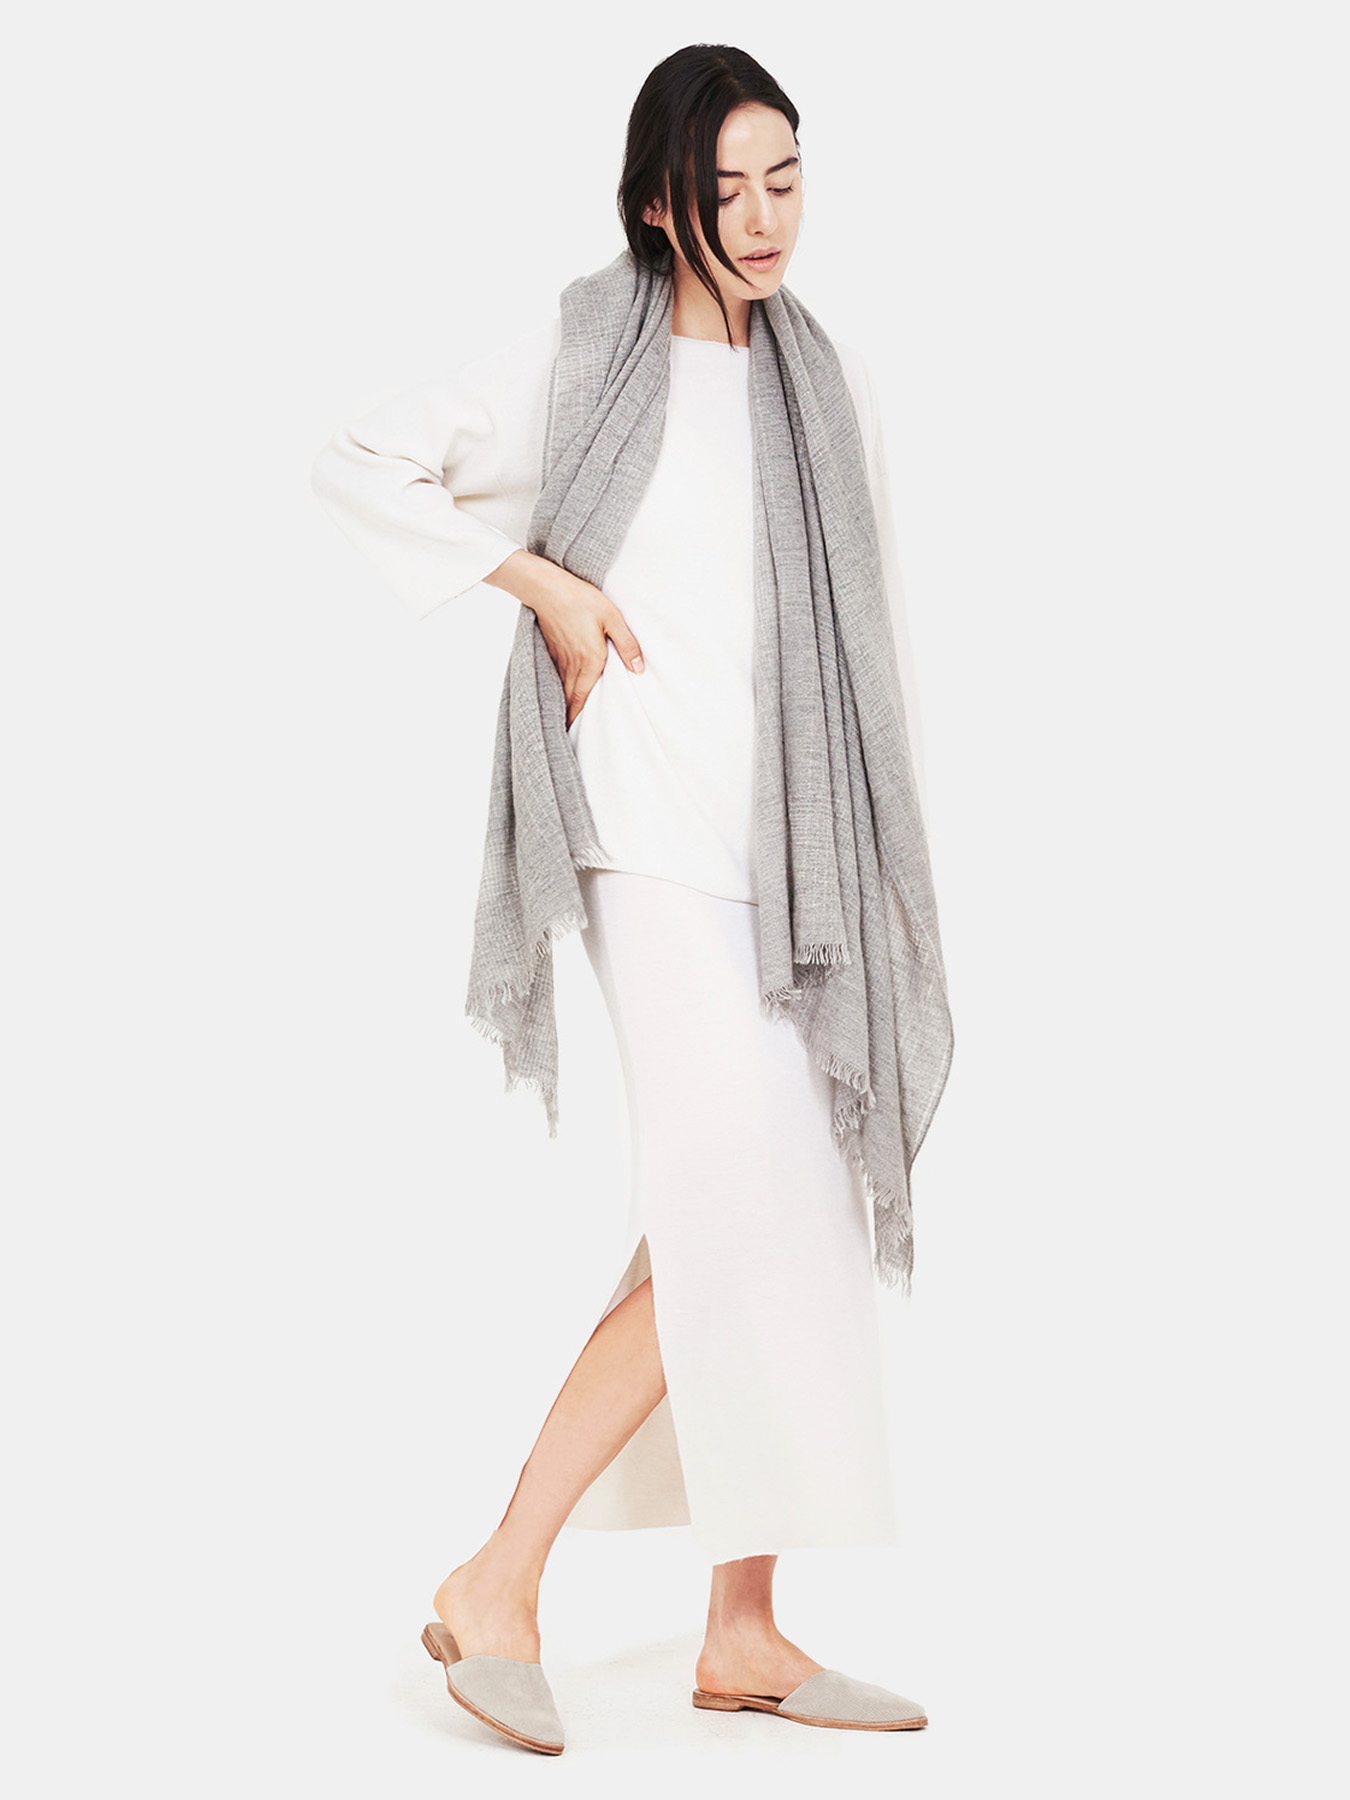 Essential-Grey-Cashmere-Shawl-f20.jpg